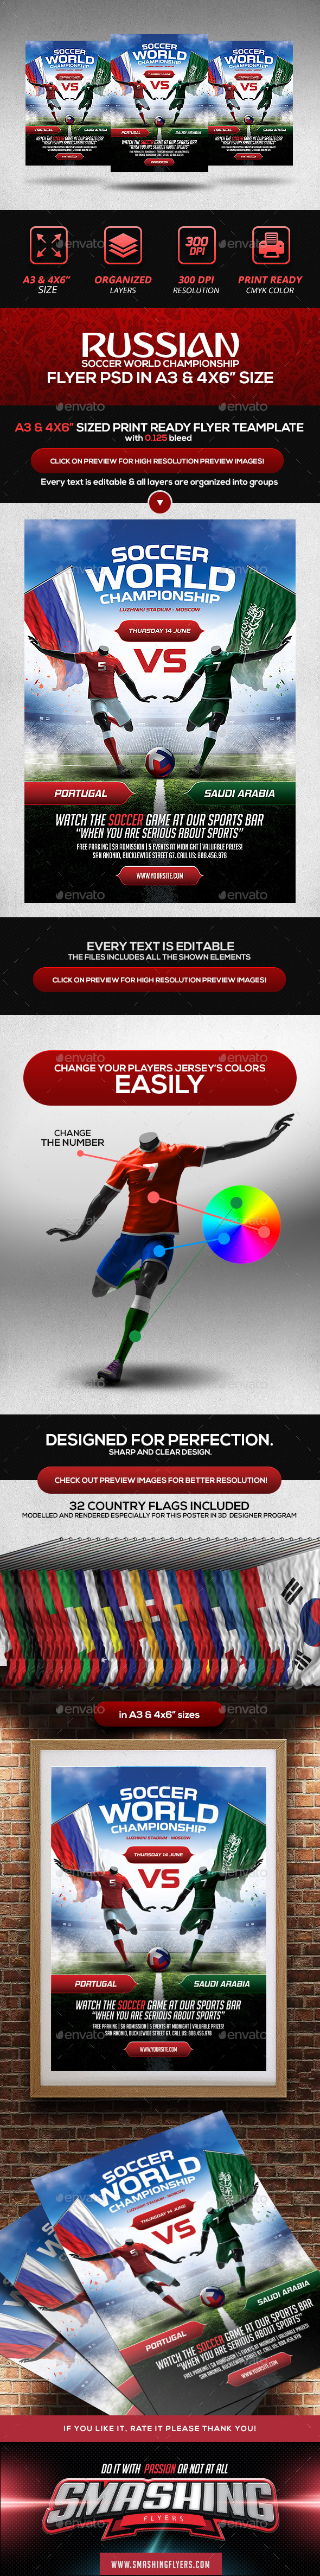 Soccer Poster Psd Template - Sports Events